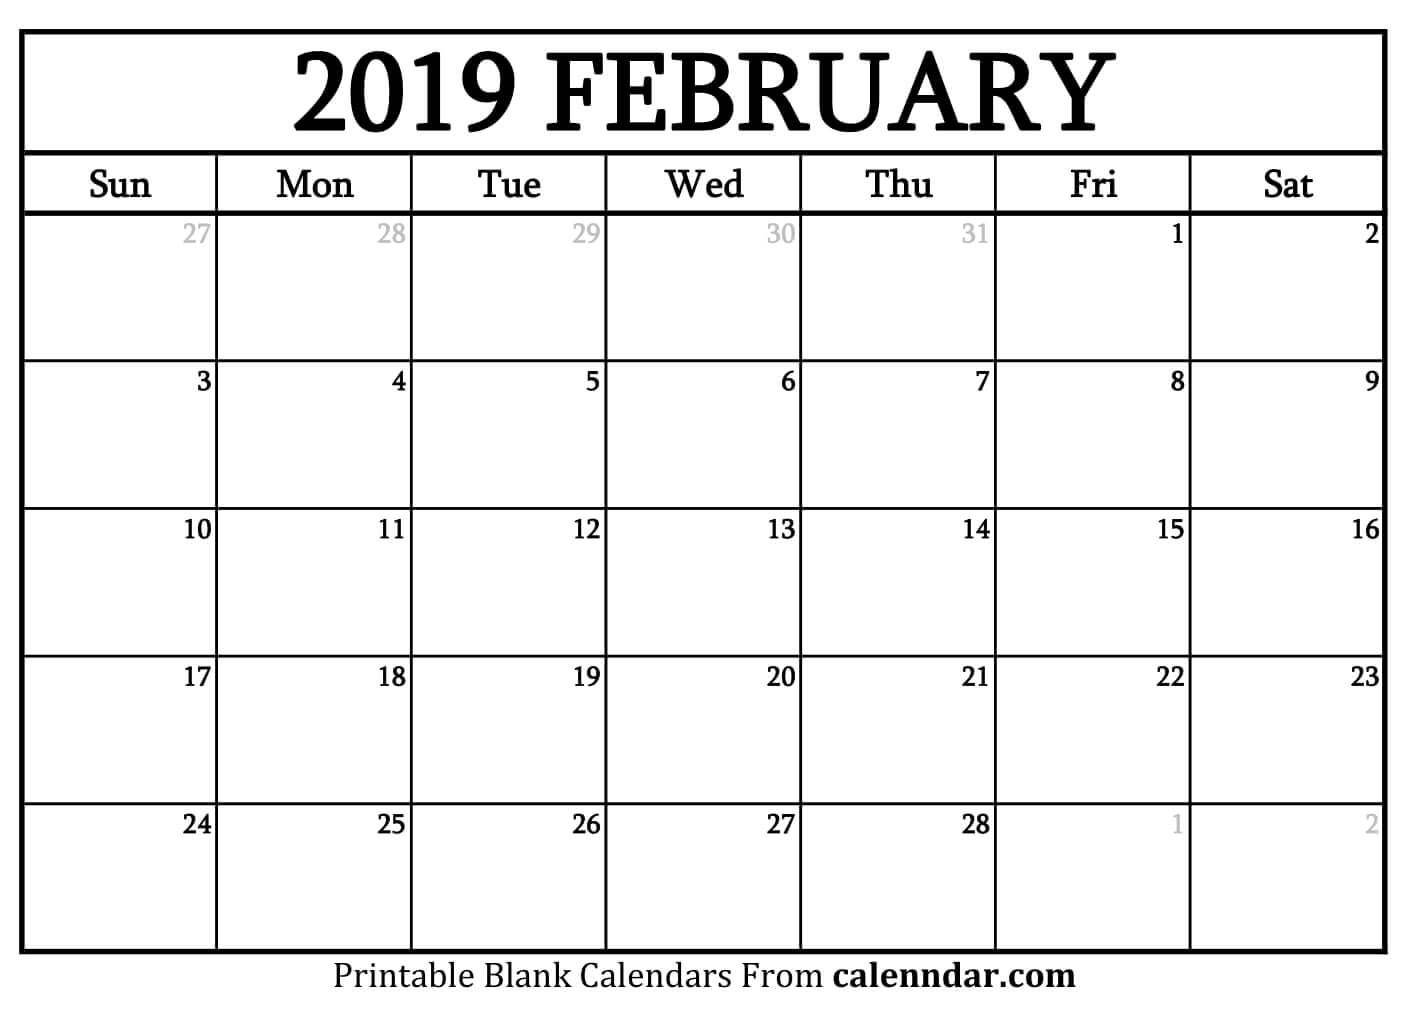 Blank February 2019 Calendar Templates - Calenndar A Calendar For February 2019